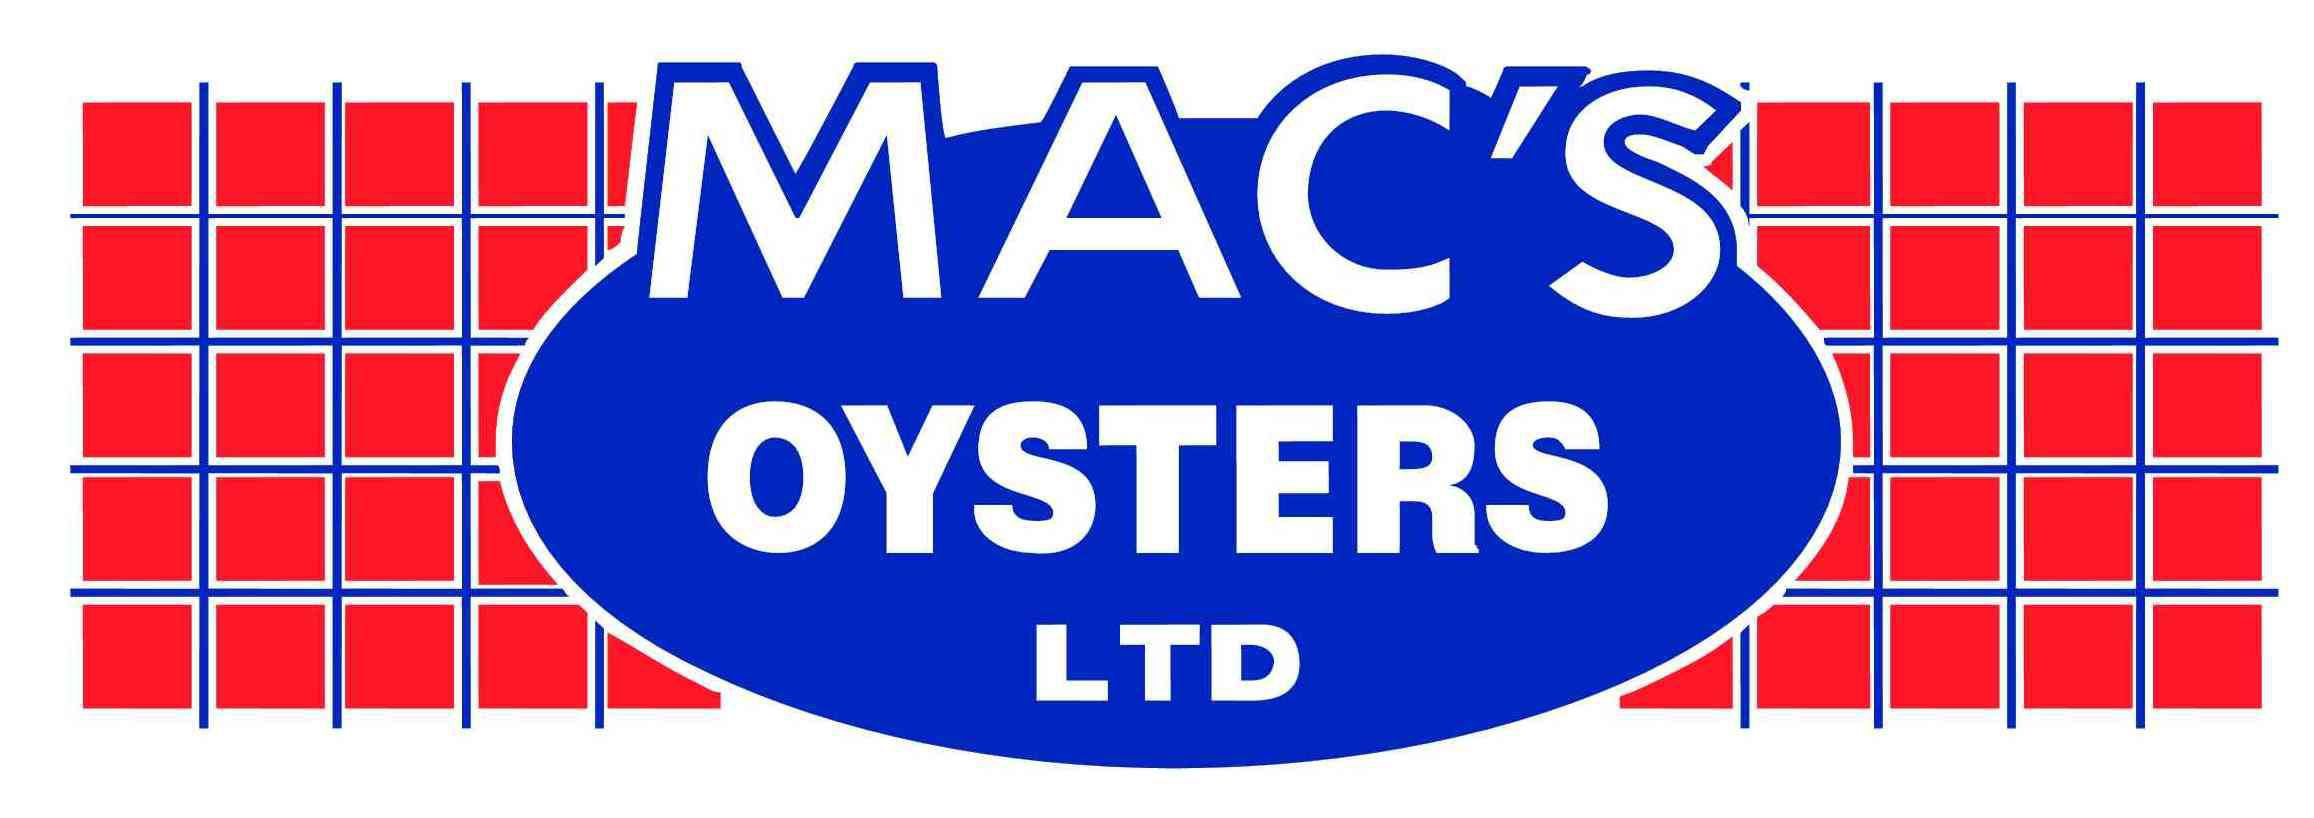 Nutritional Information Table - MAC'S OYSTERS LTD